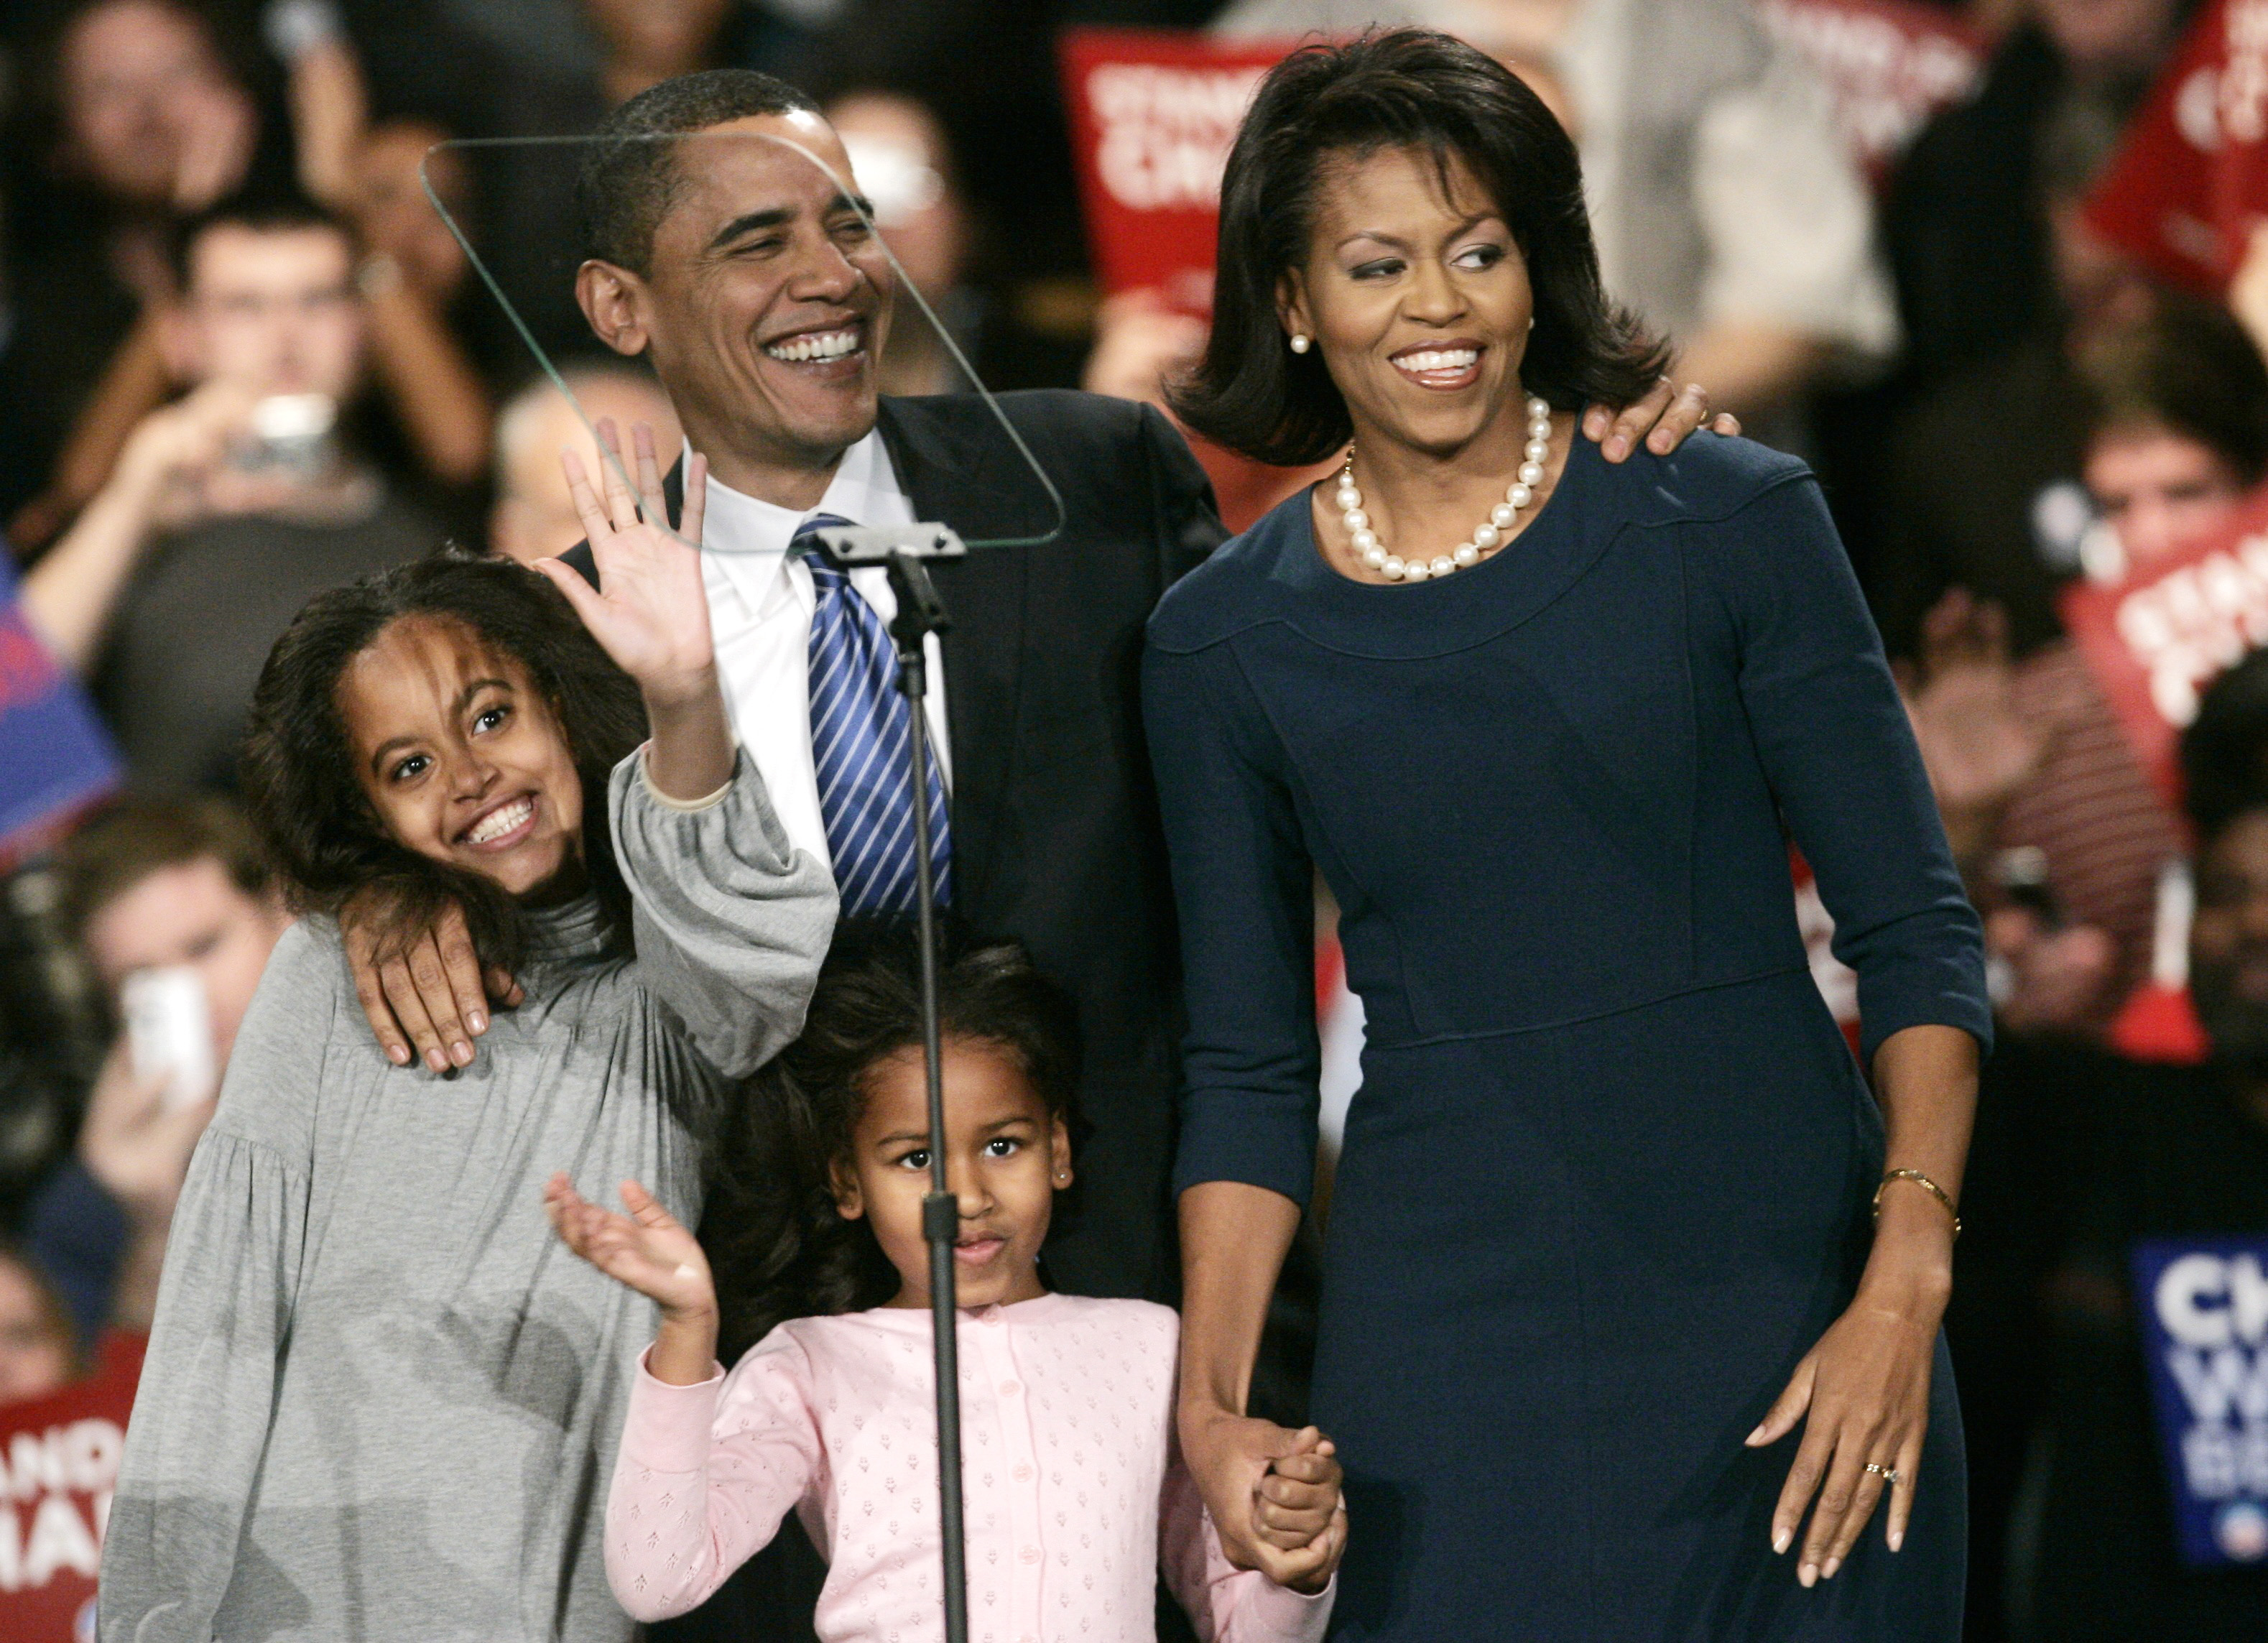 Photos Over 8 Years First Daughters Malia And Sasha Grow Up In The White House Pbs Newshour